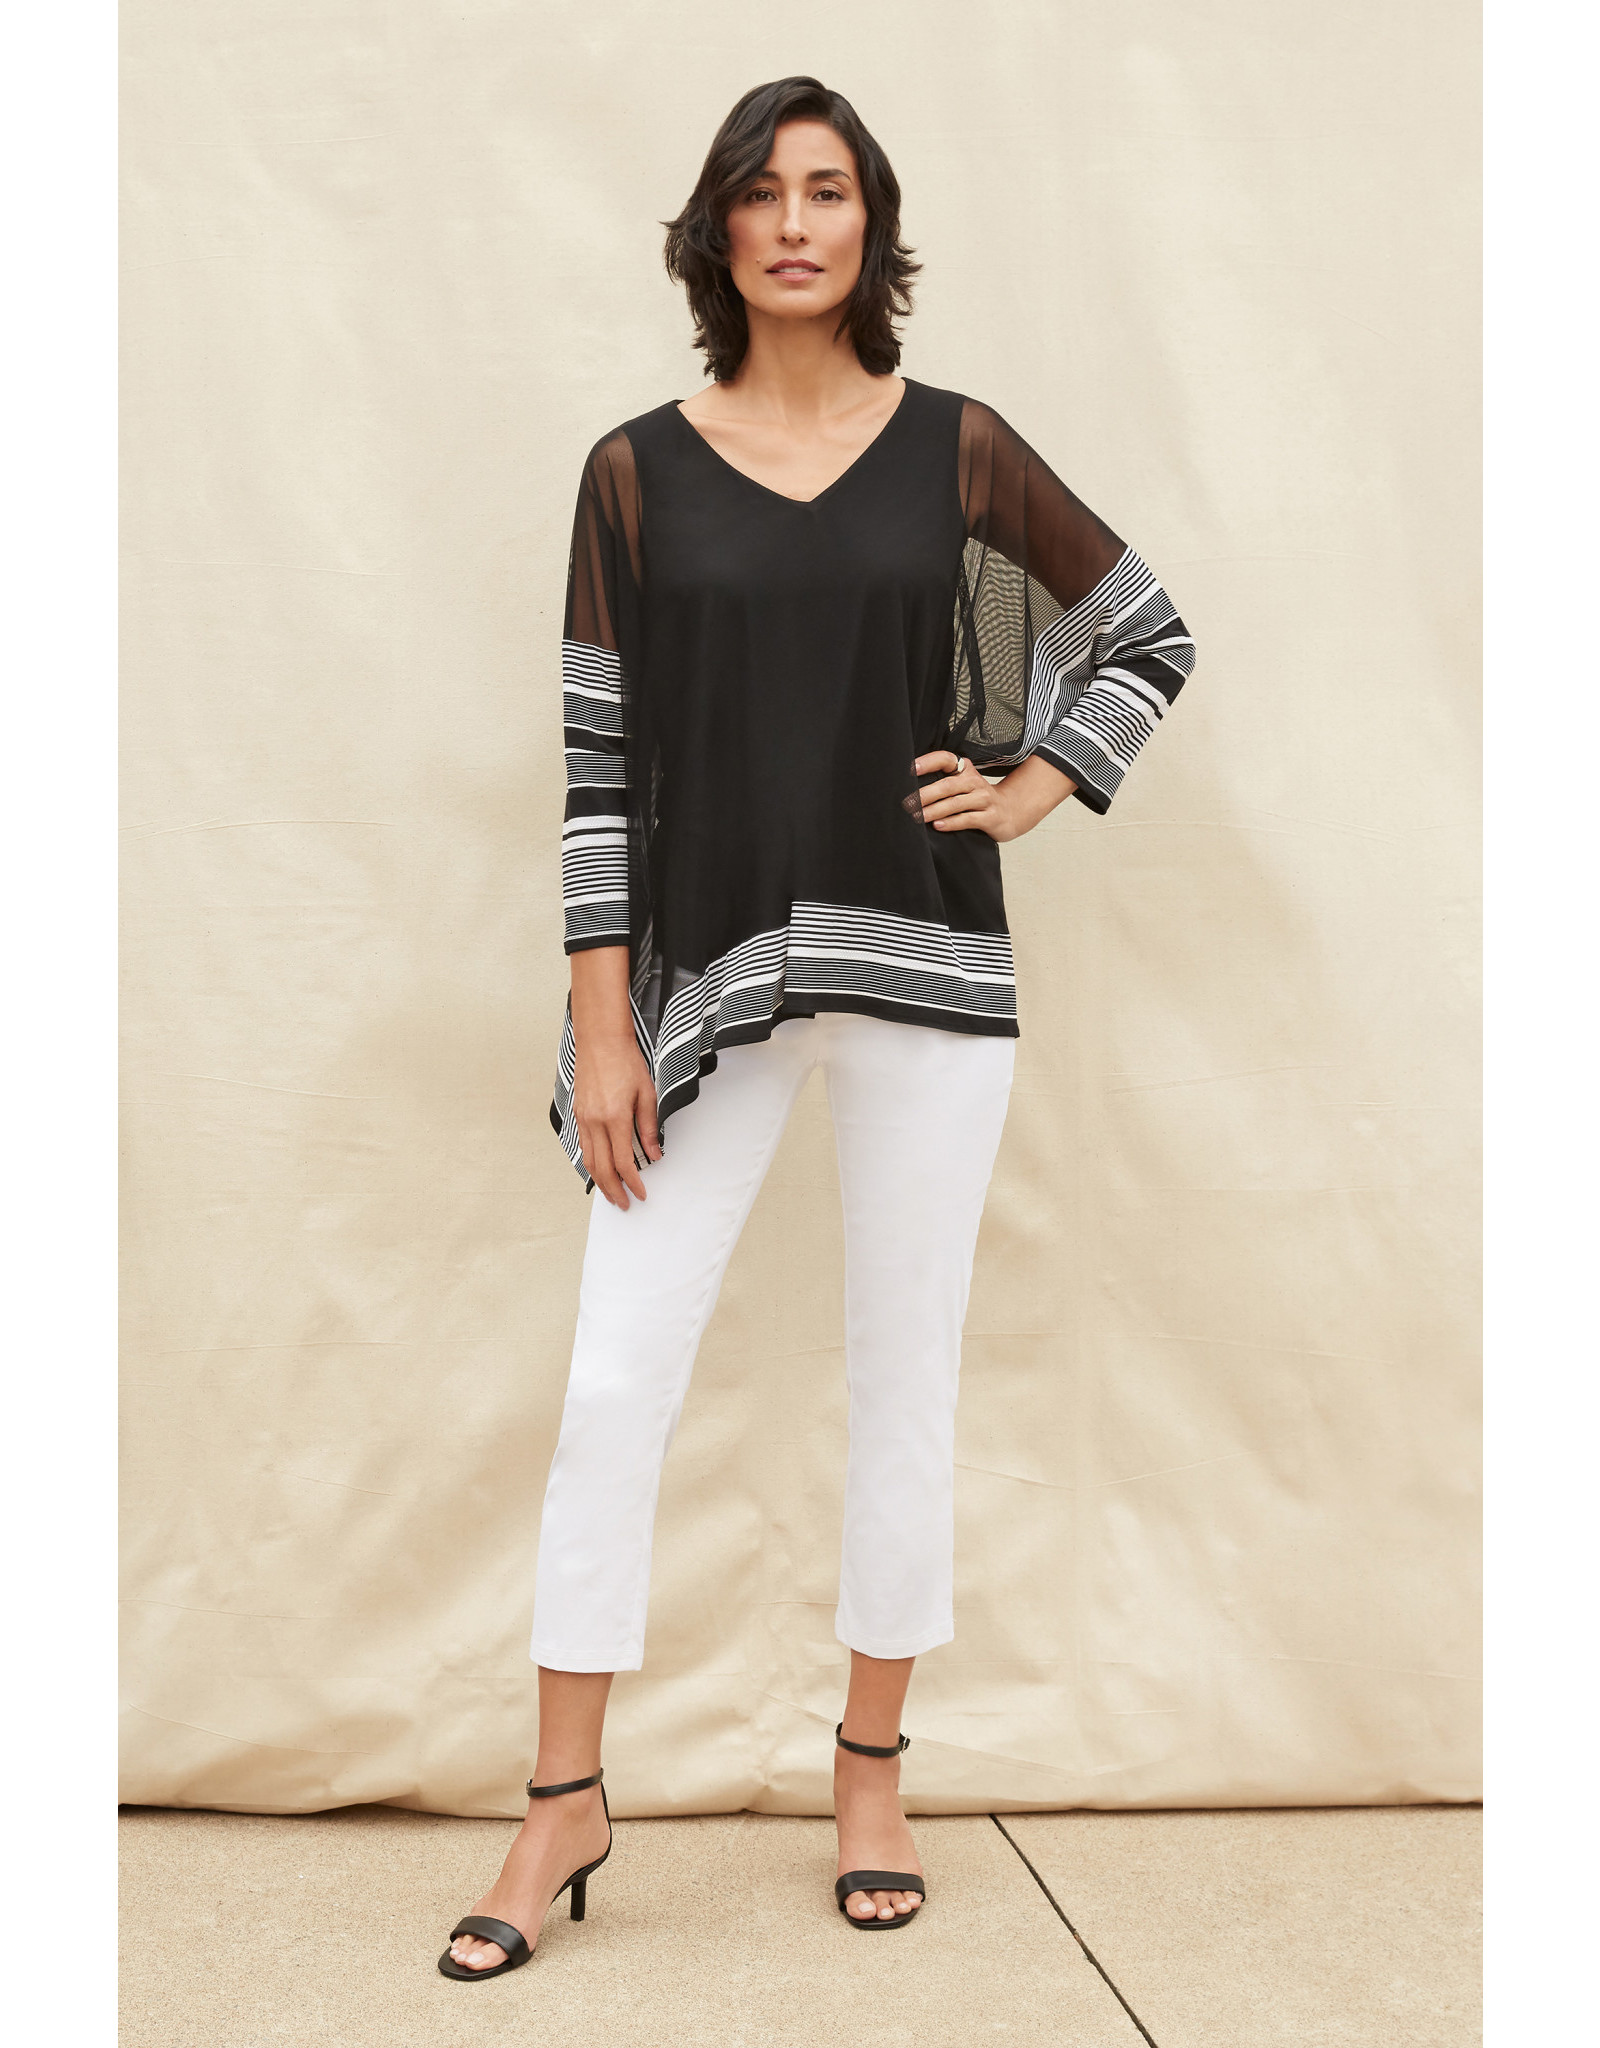 Joseph Ribkoff Black & White Tunic